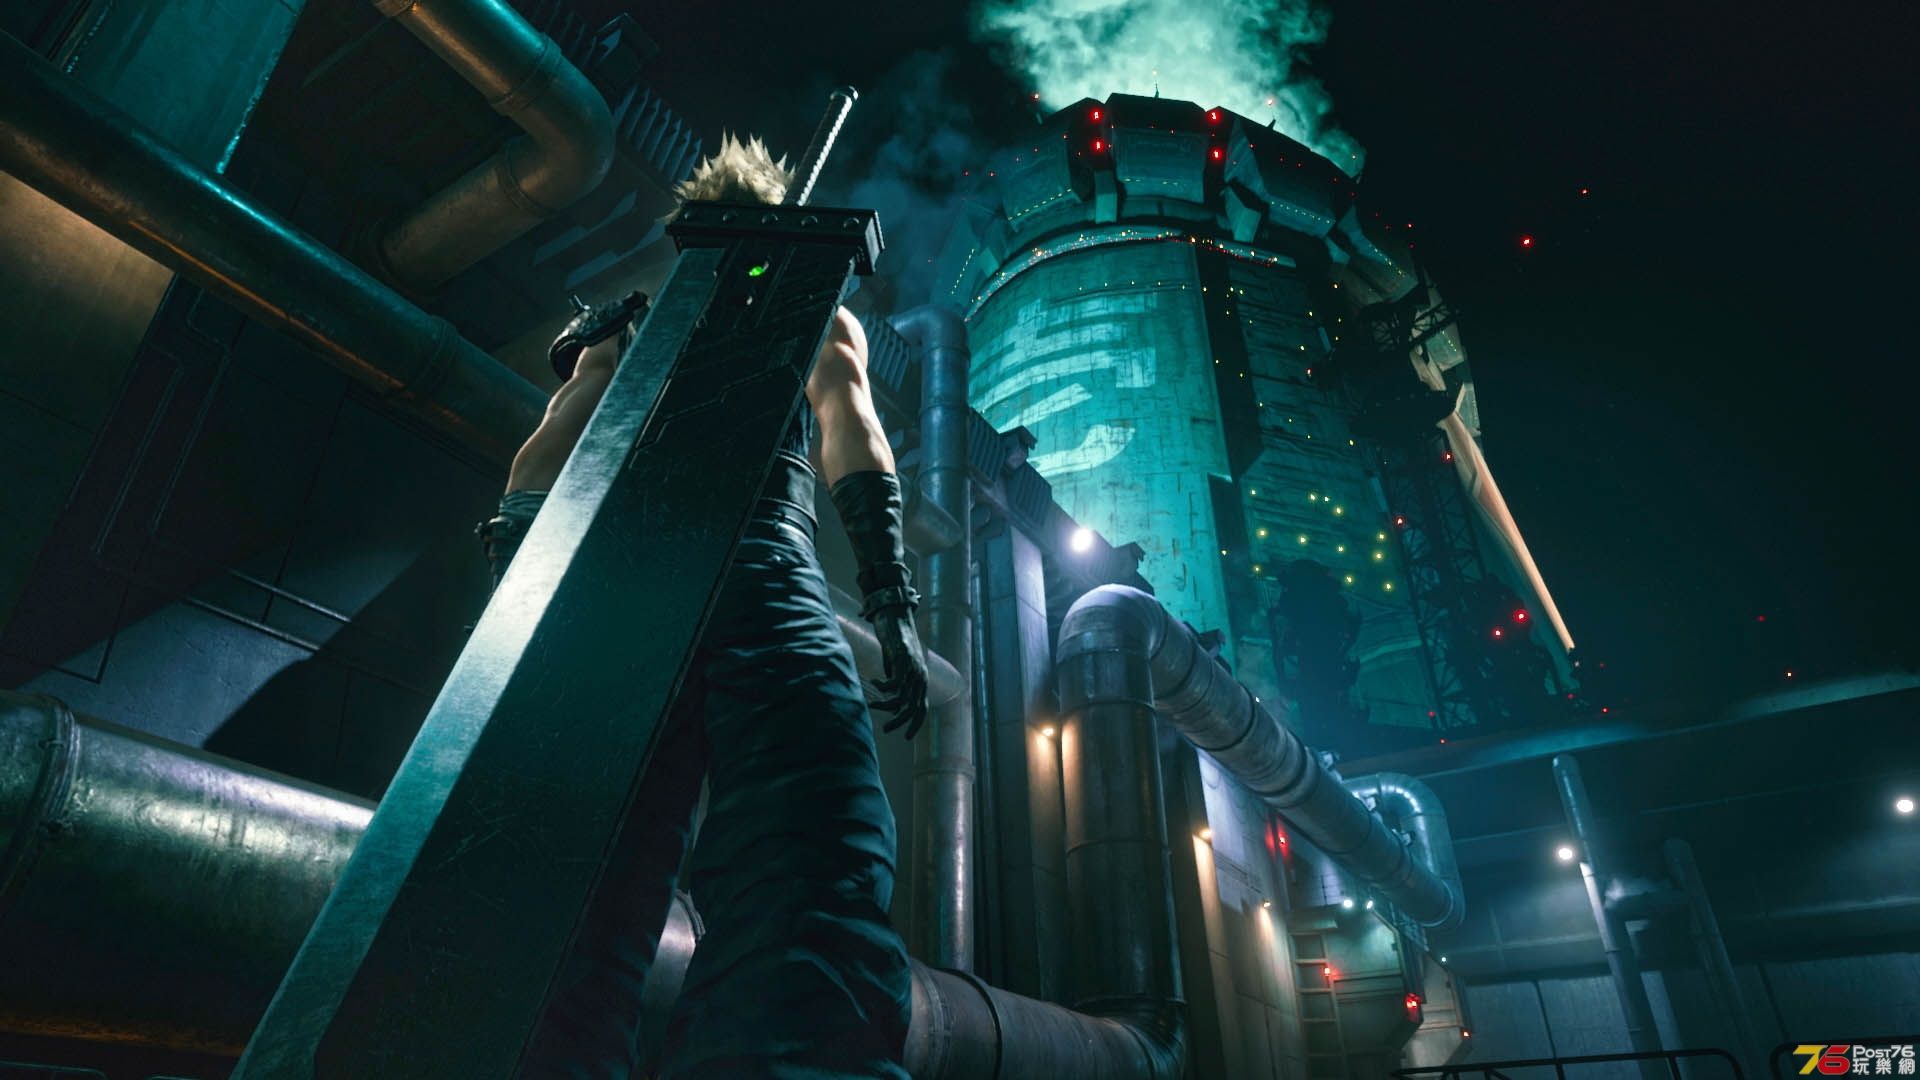 FINAL FANTASY VII REMAKE (7).jpg